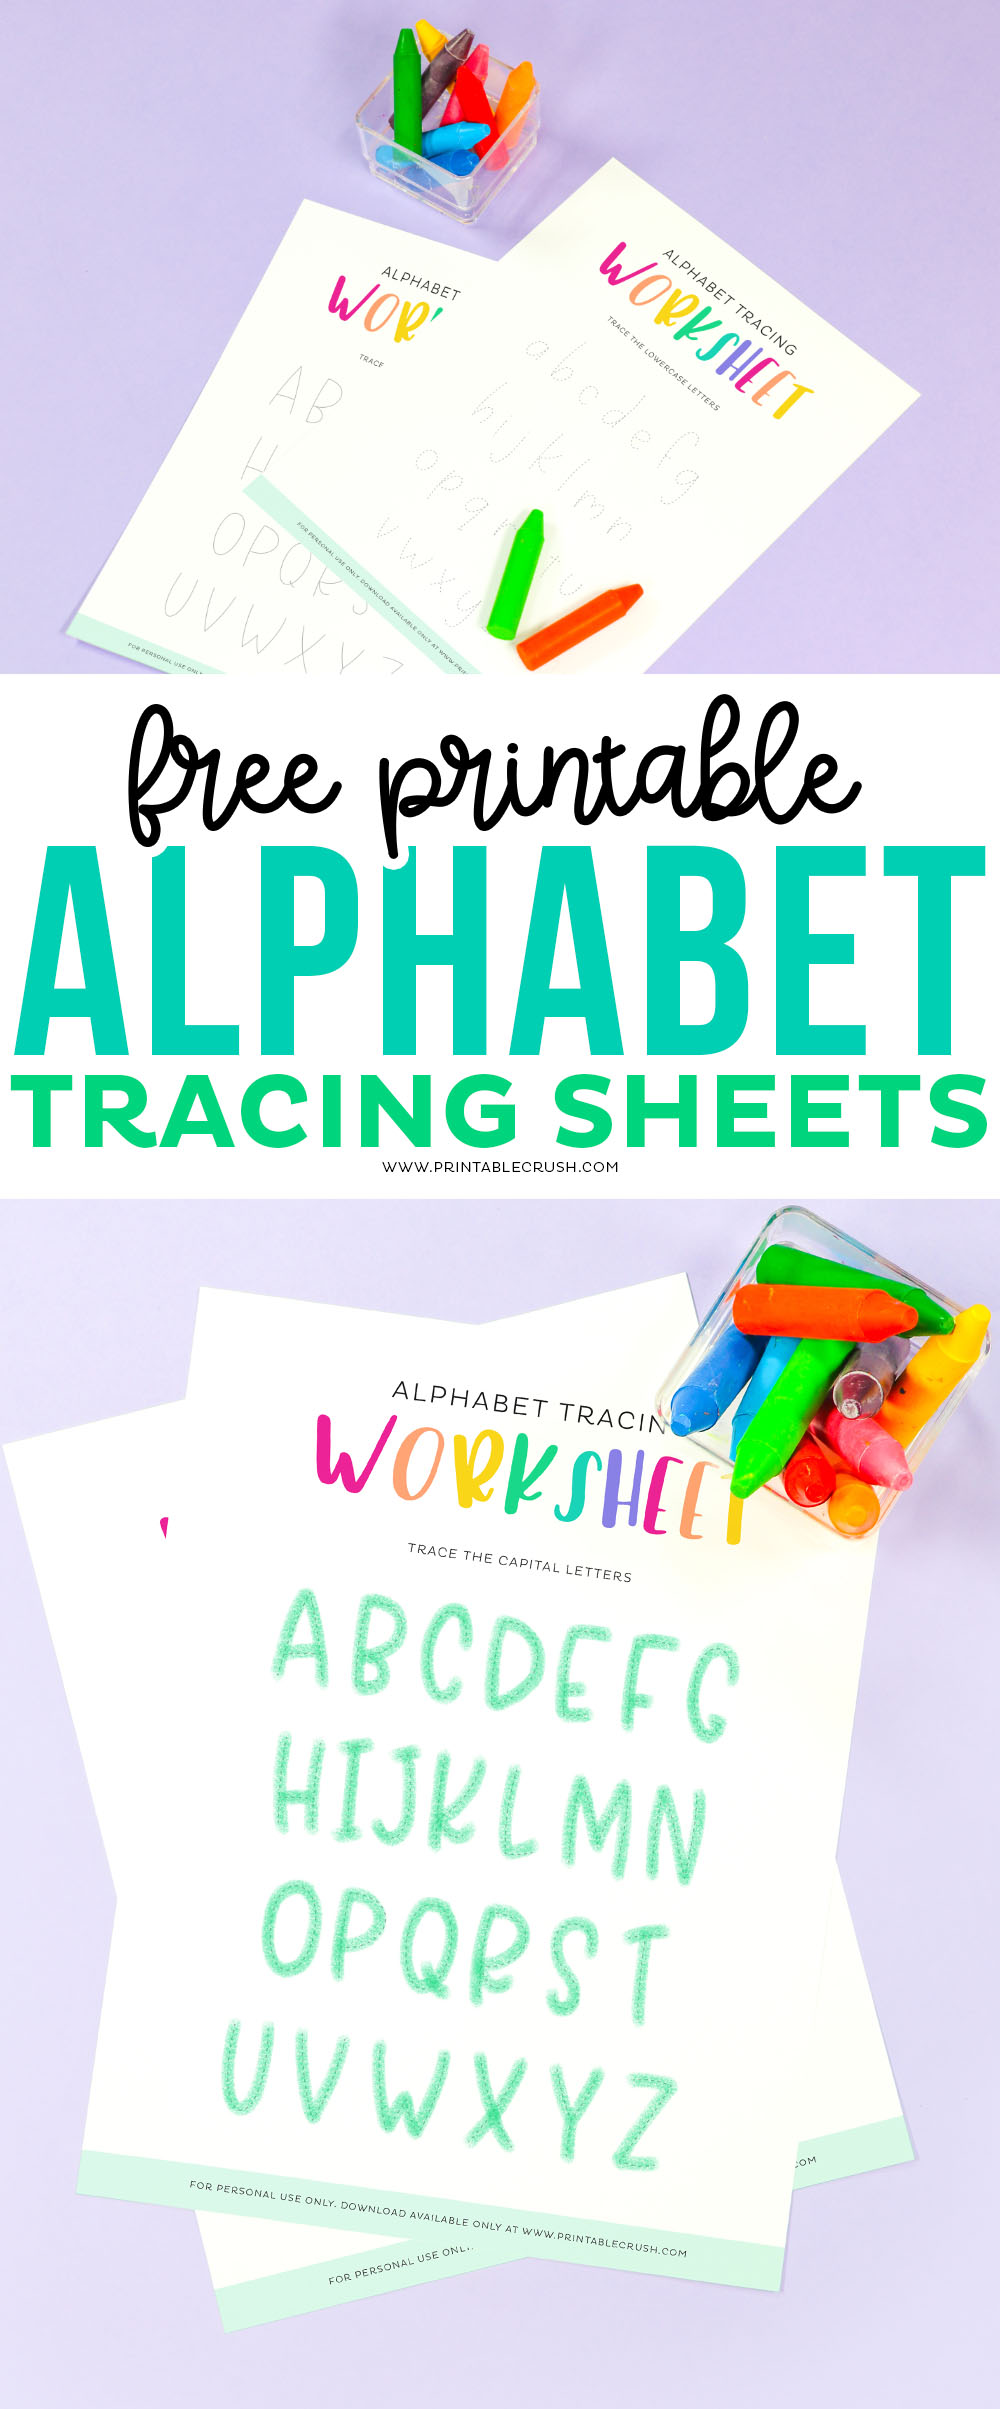 Free Printable Alphabet Tracing Sheets for Kindergarteners and Preschoolers - Preschool Alphabet Activity - Kindergarten Alphabet Printable - Printable Crush #freeprintable #preschoolprintable #alphabetprintable #freealphabetprintable #alphabetworksheet #learnletters via @printablecrush